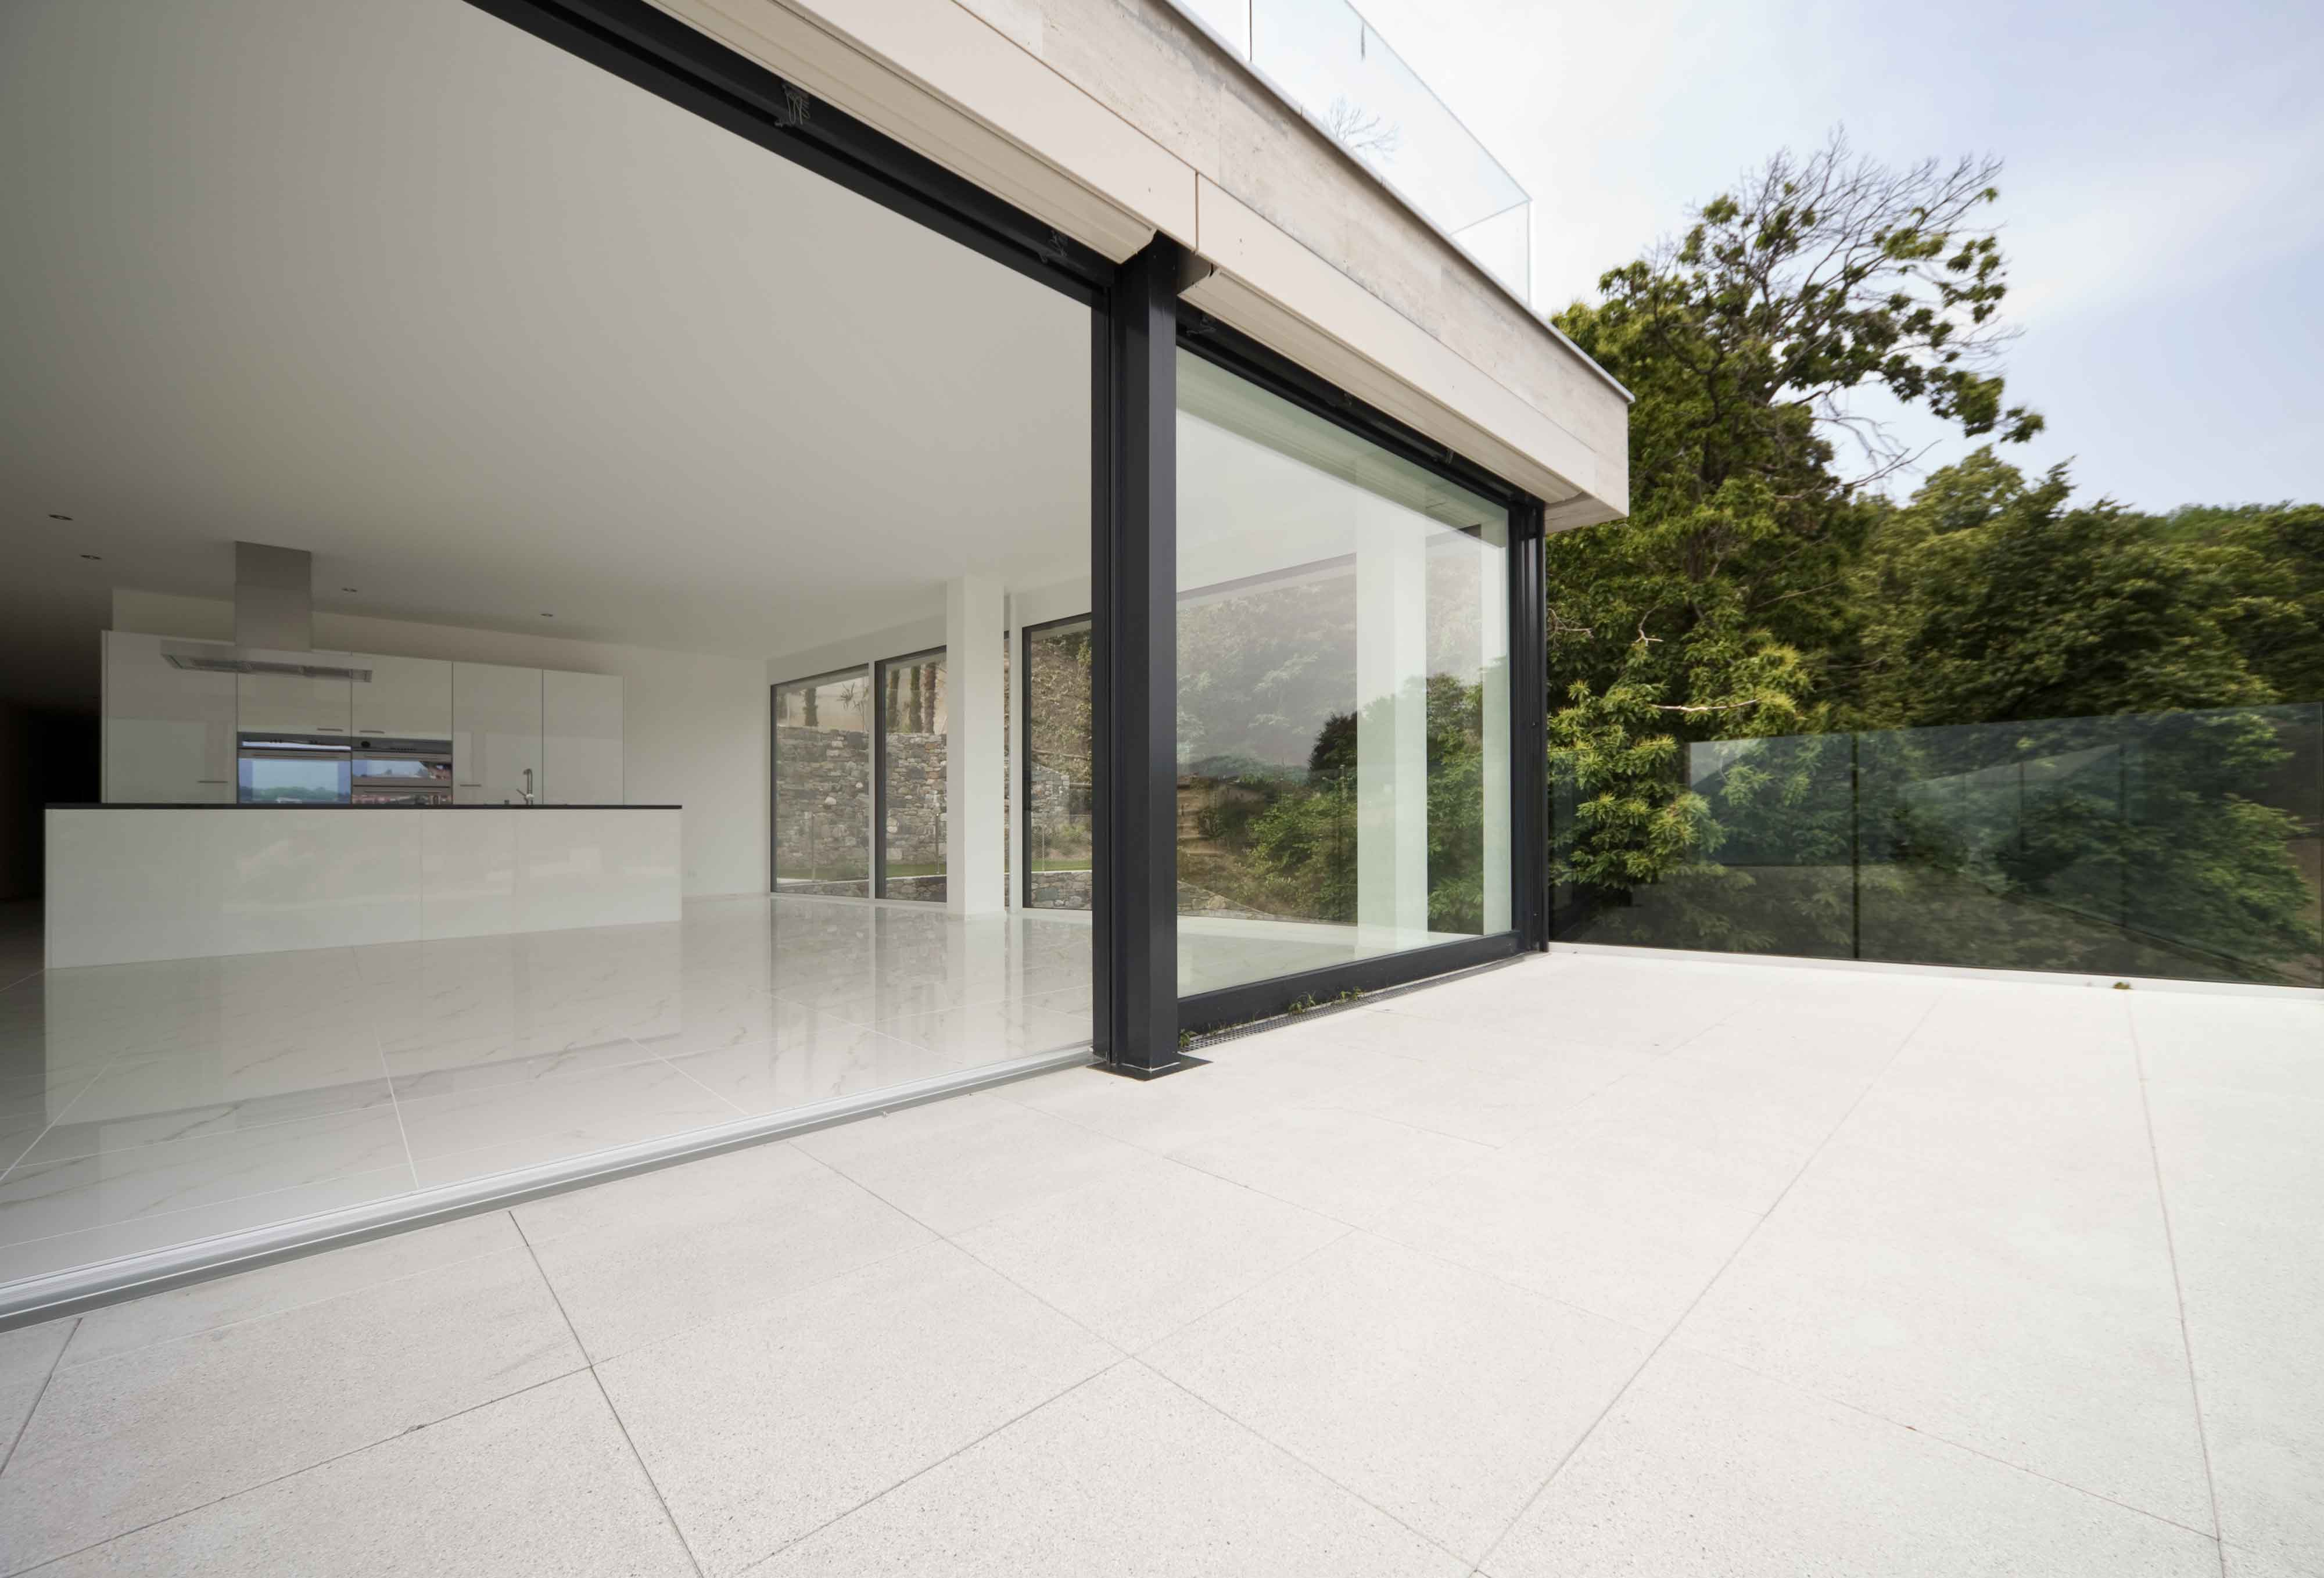 Open kitchen extension with glass door leading out to the exterior